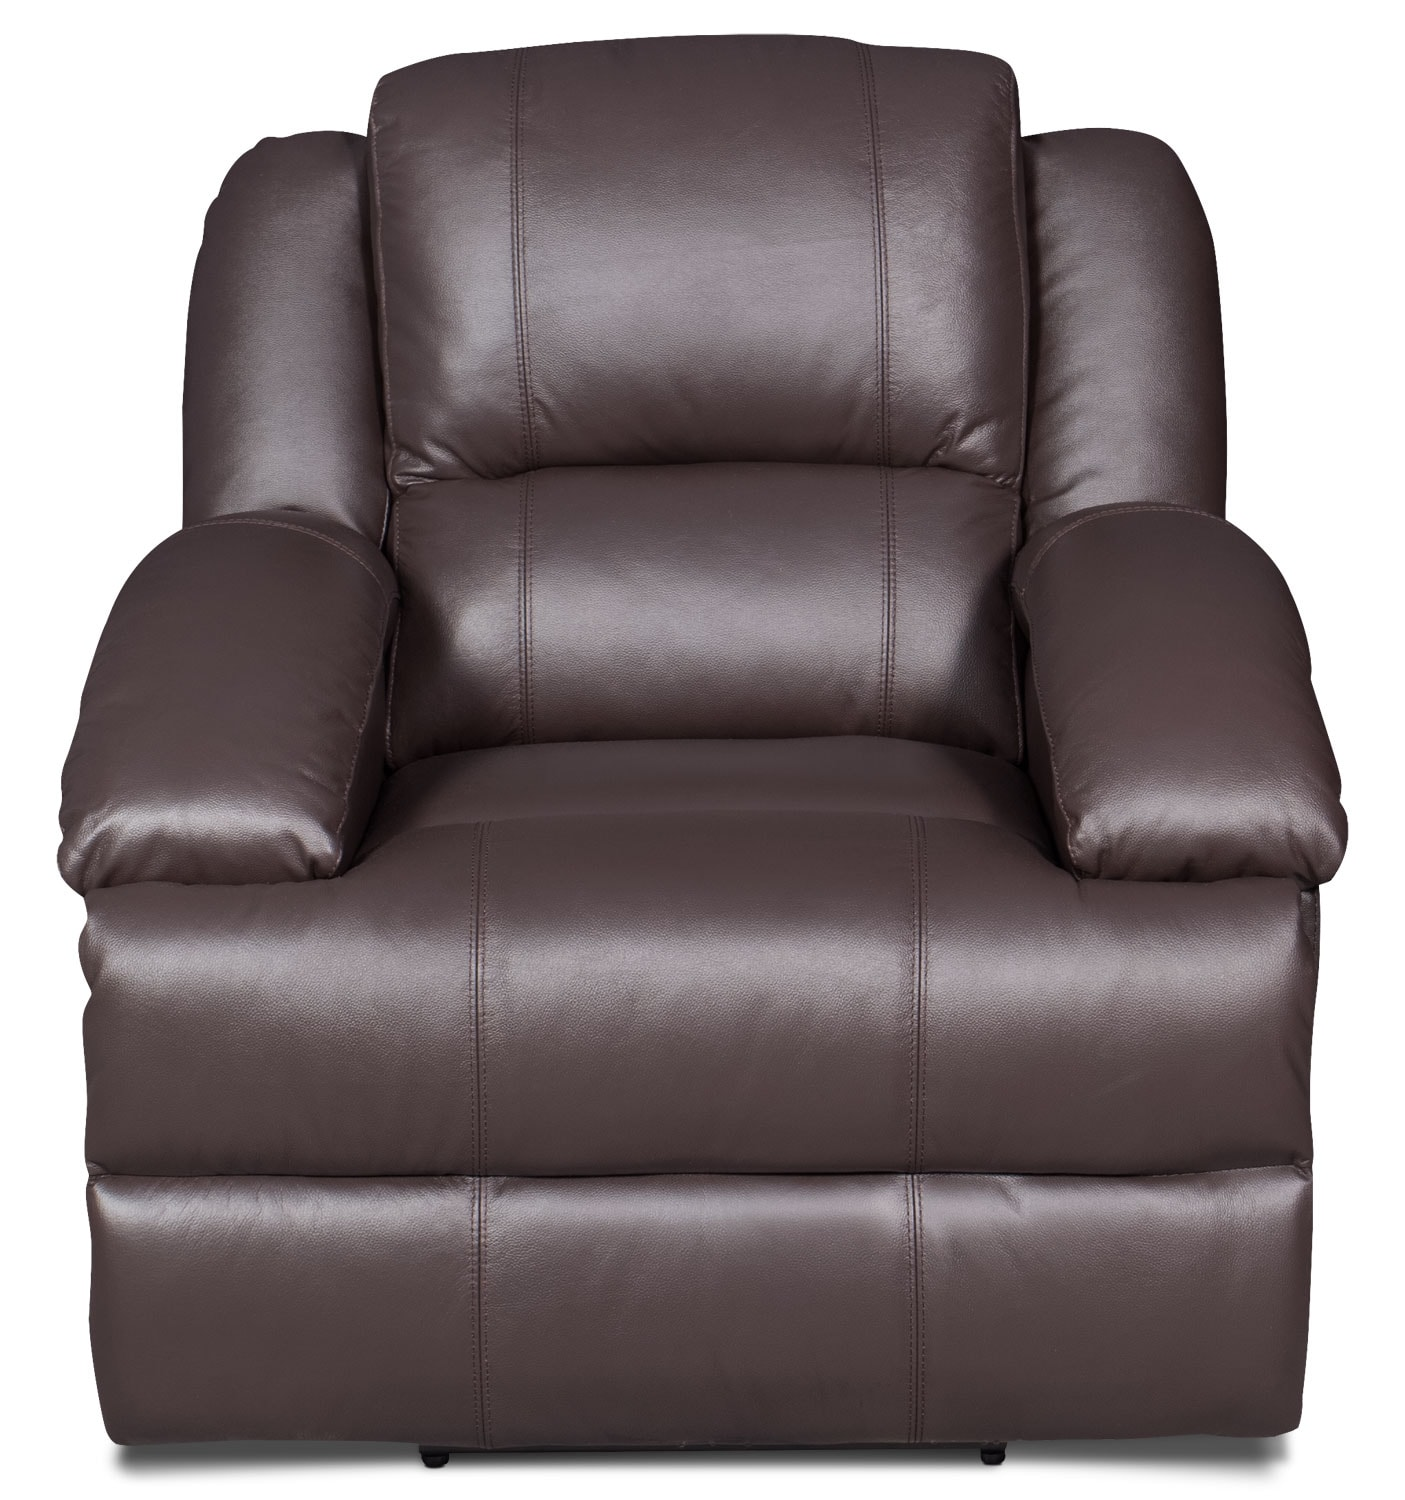 Living Room Furniture - Luka Genuine Leather Power Reclining Chair - Brown